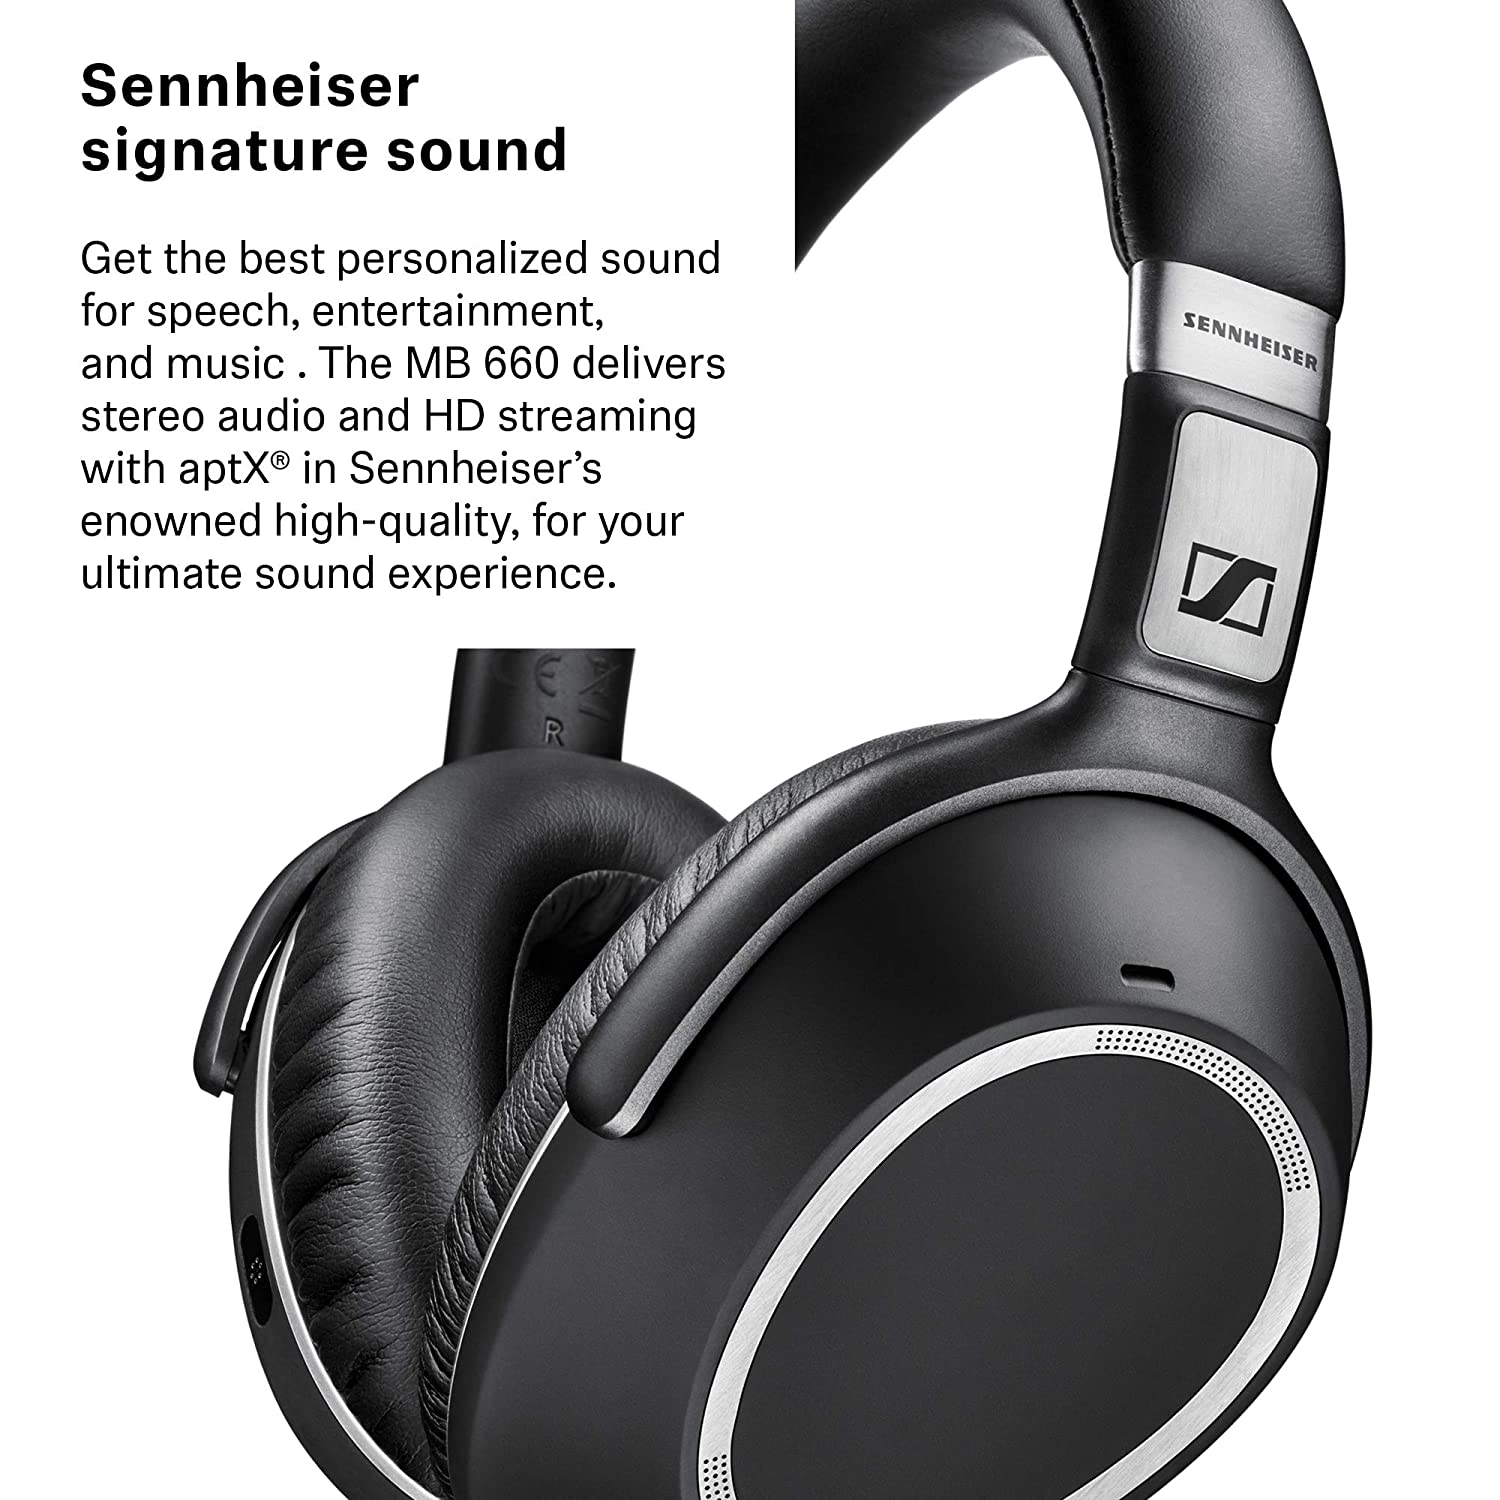 ba339c34a78 Amazon.com : Sennheiser MB 660 MS (507093) - Dual-Sided, Dual-Connectivity,  Wireless, Bluetooth, Adaptive ANC Over-Ear Headset | For Desk/Cell Phone ...